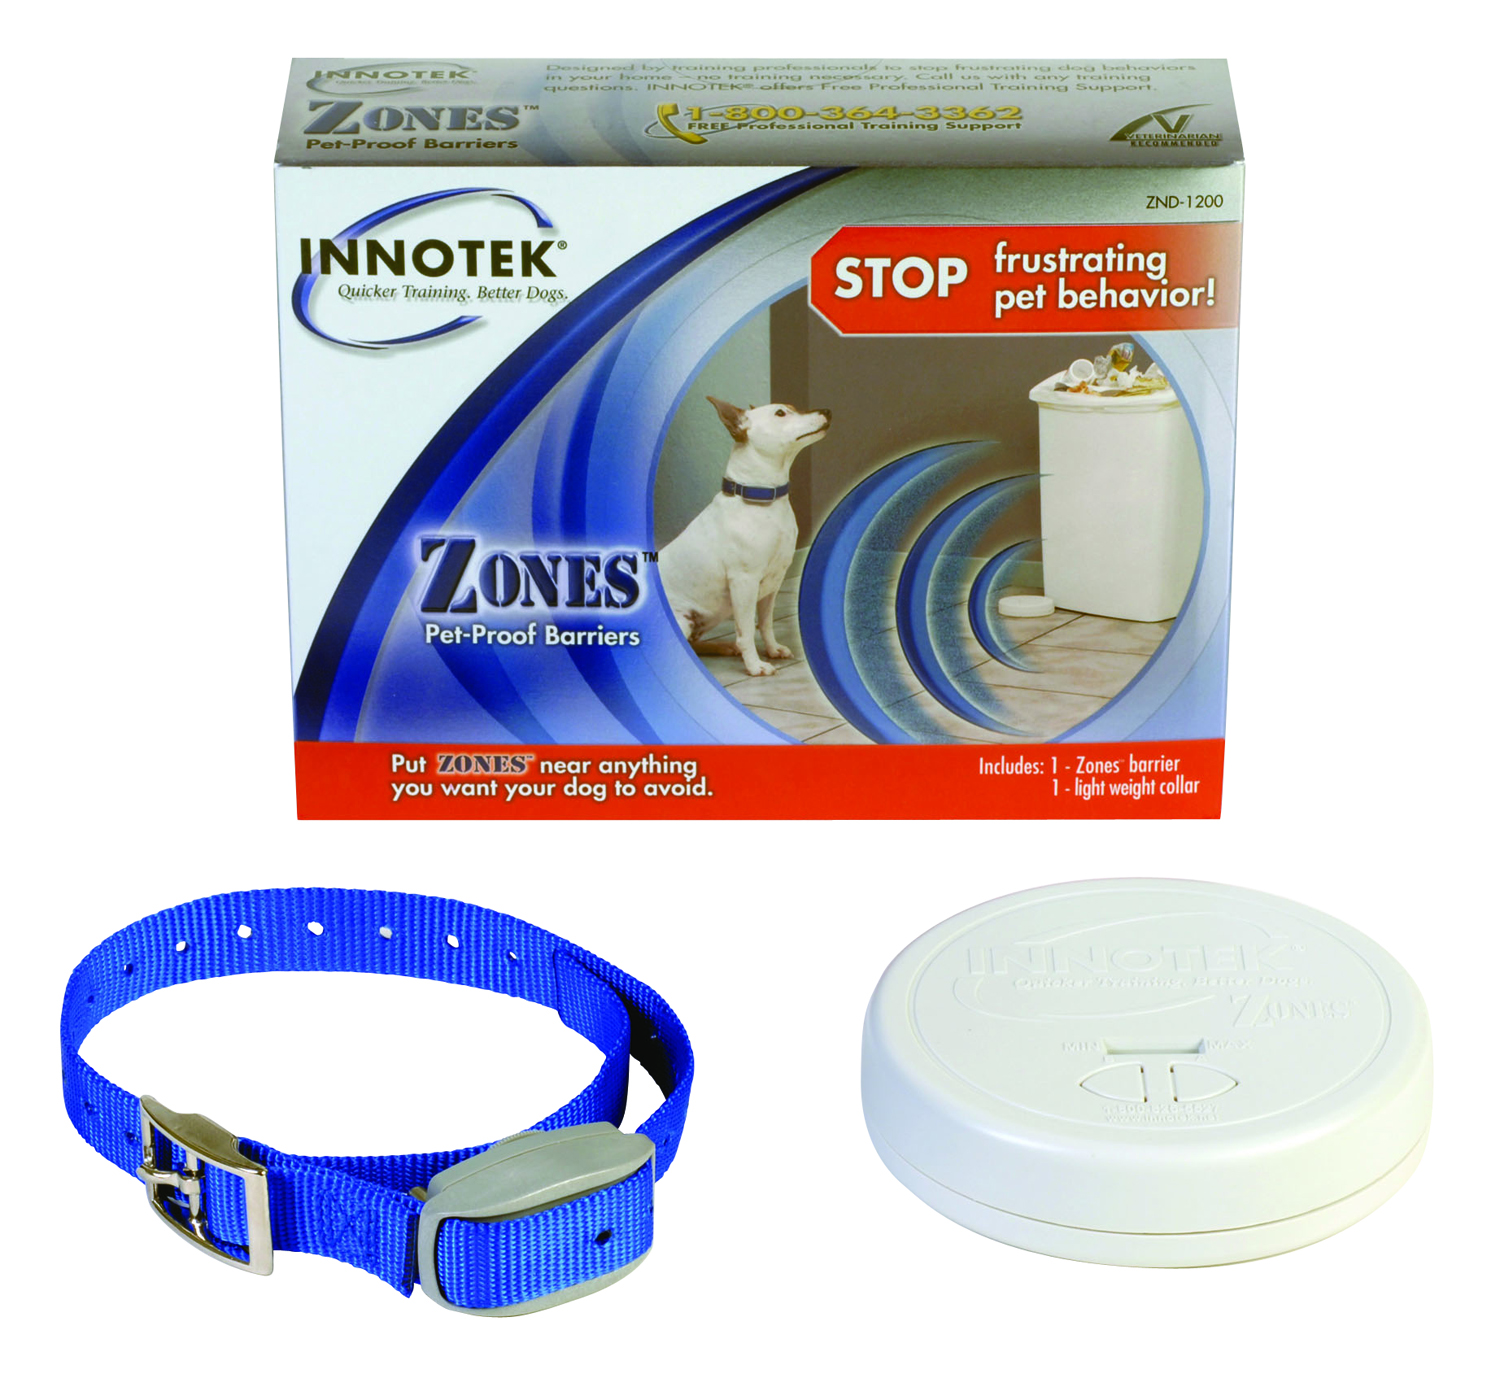 Innotek Pet Barrier with One Zone